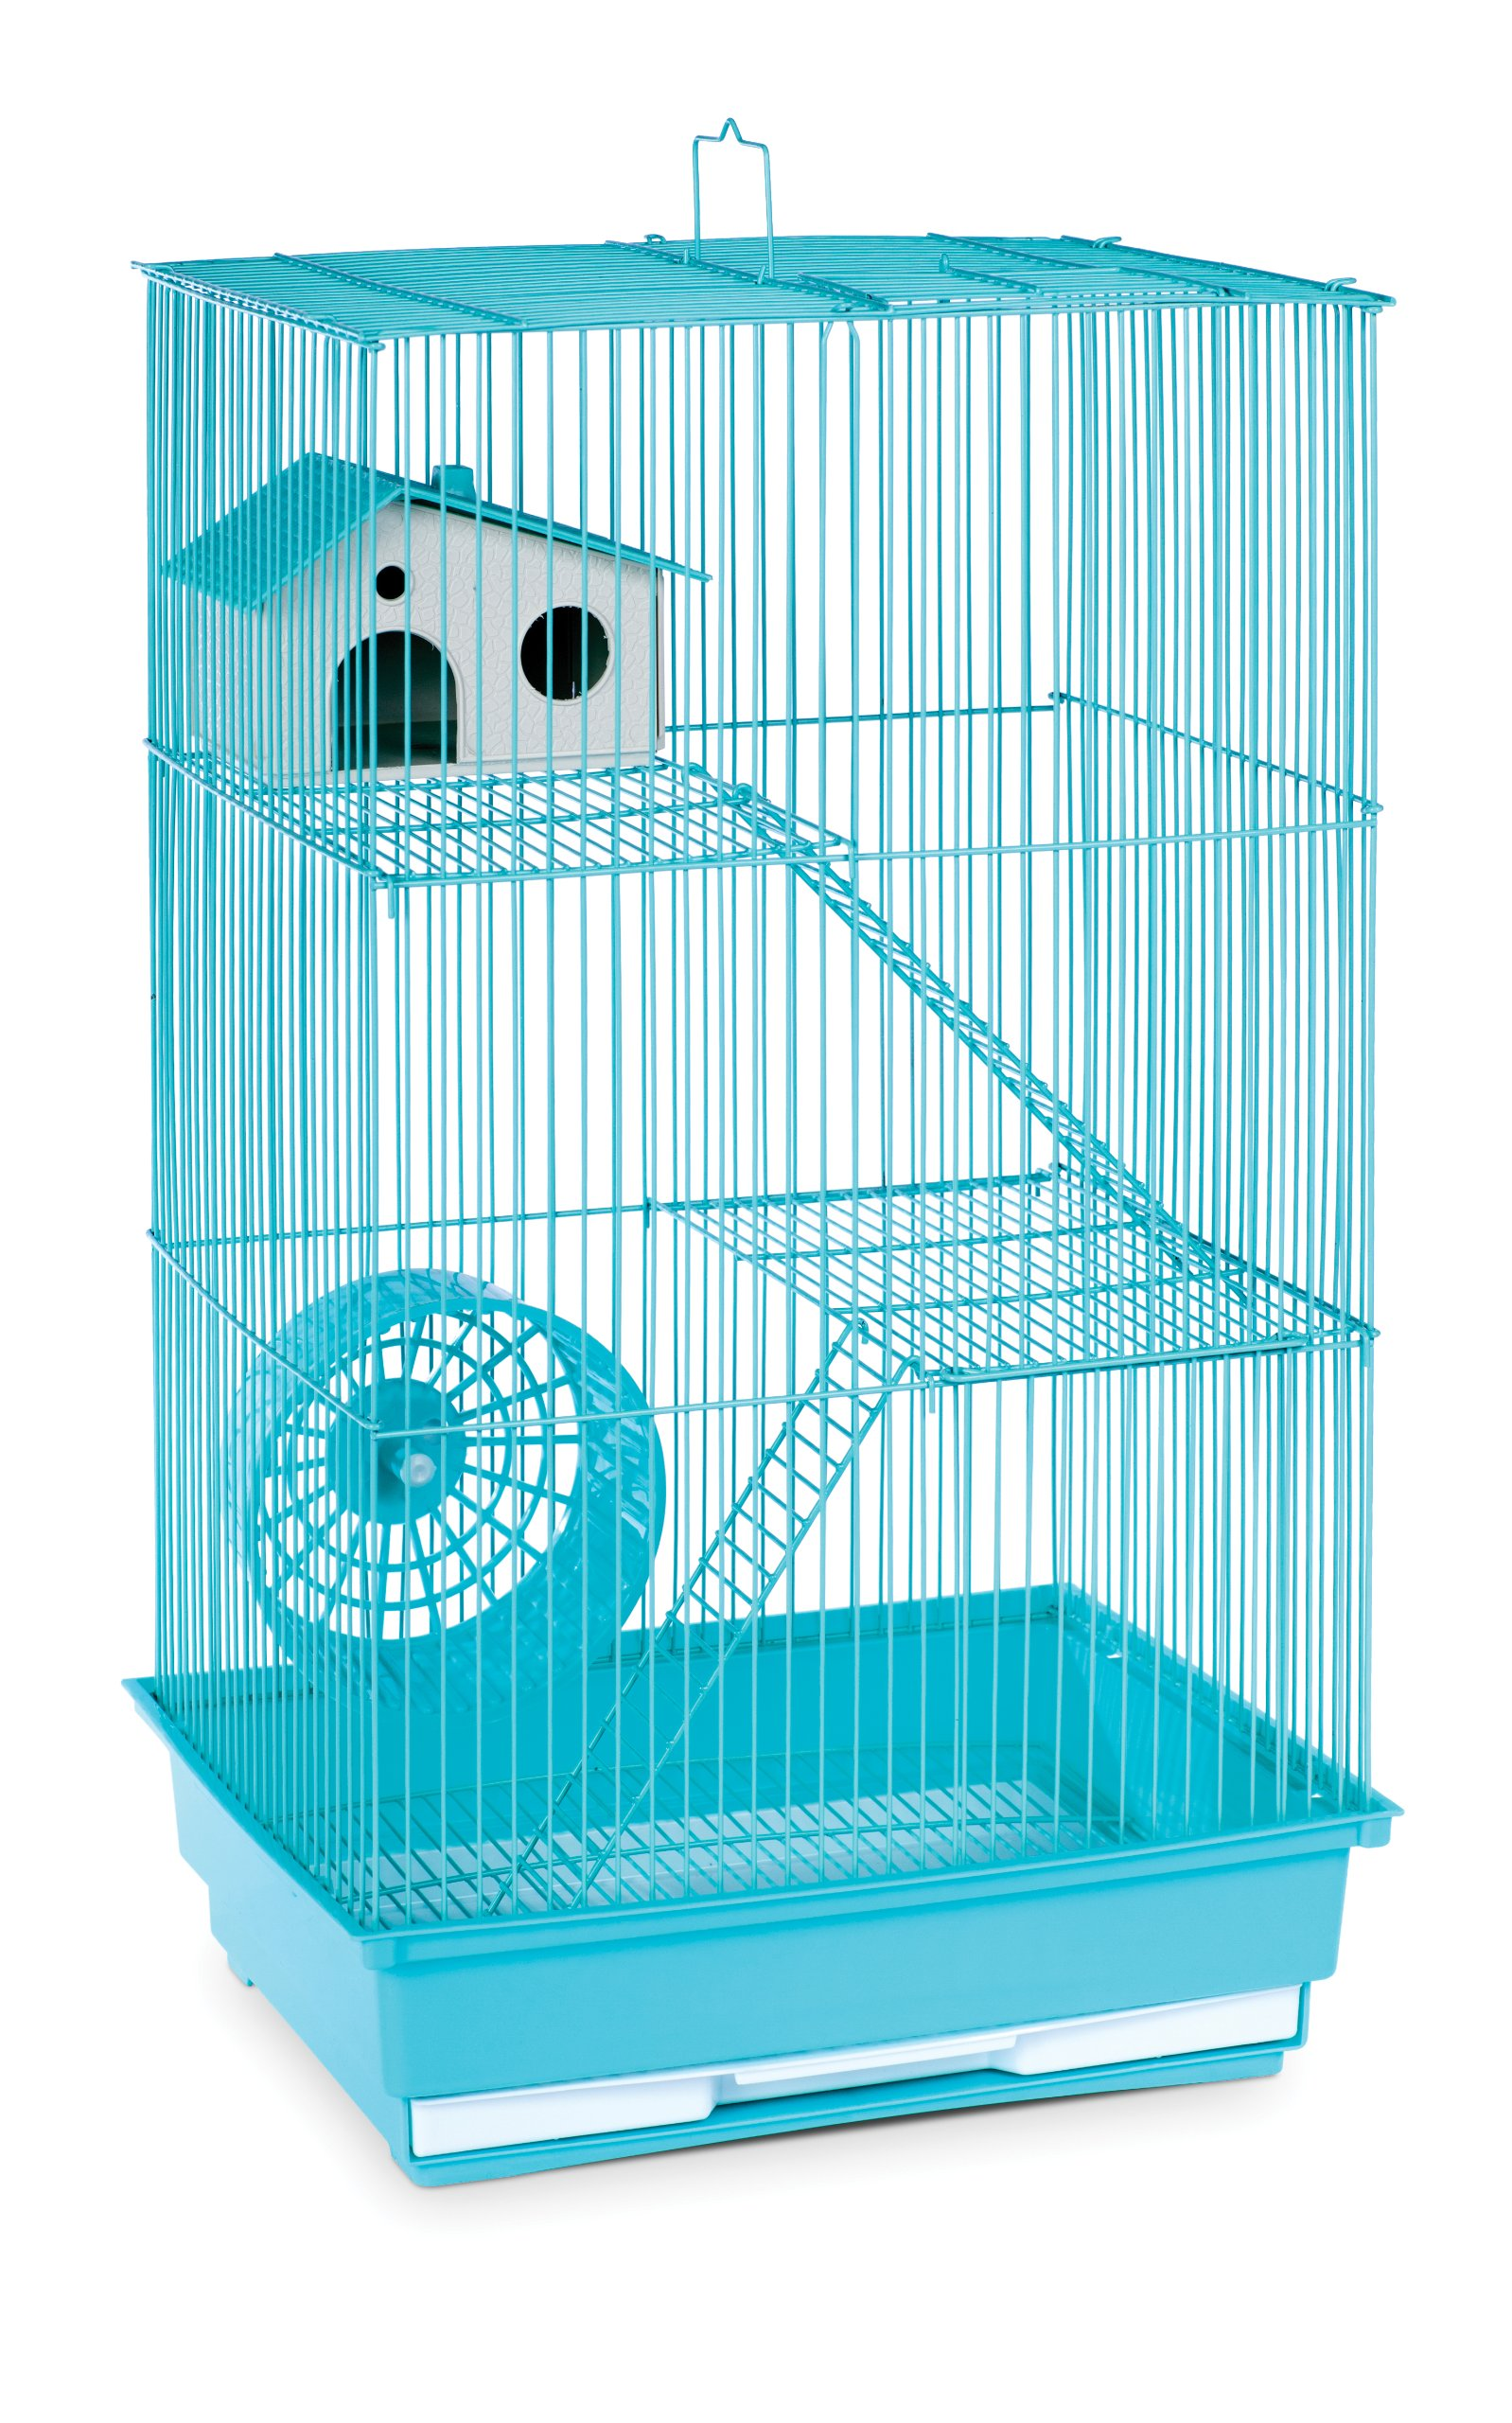 Prevue Hendryx SP2030G Three Story Hamster and Gerbil Cage, Mint Green by Prevue Pet Products